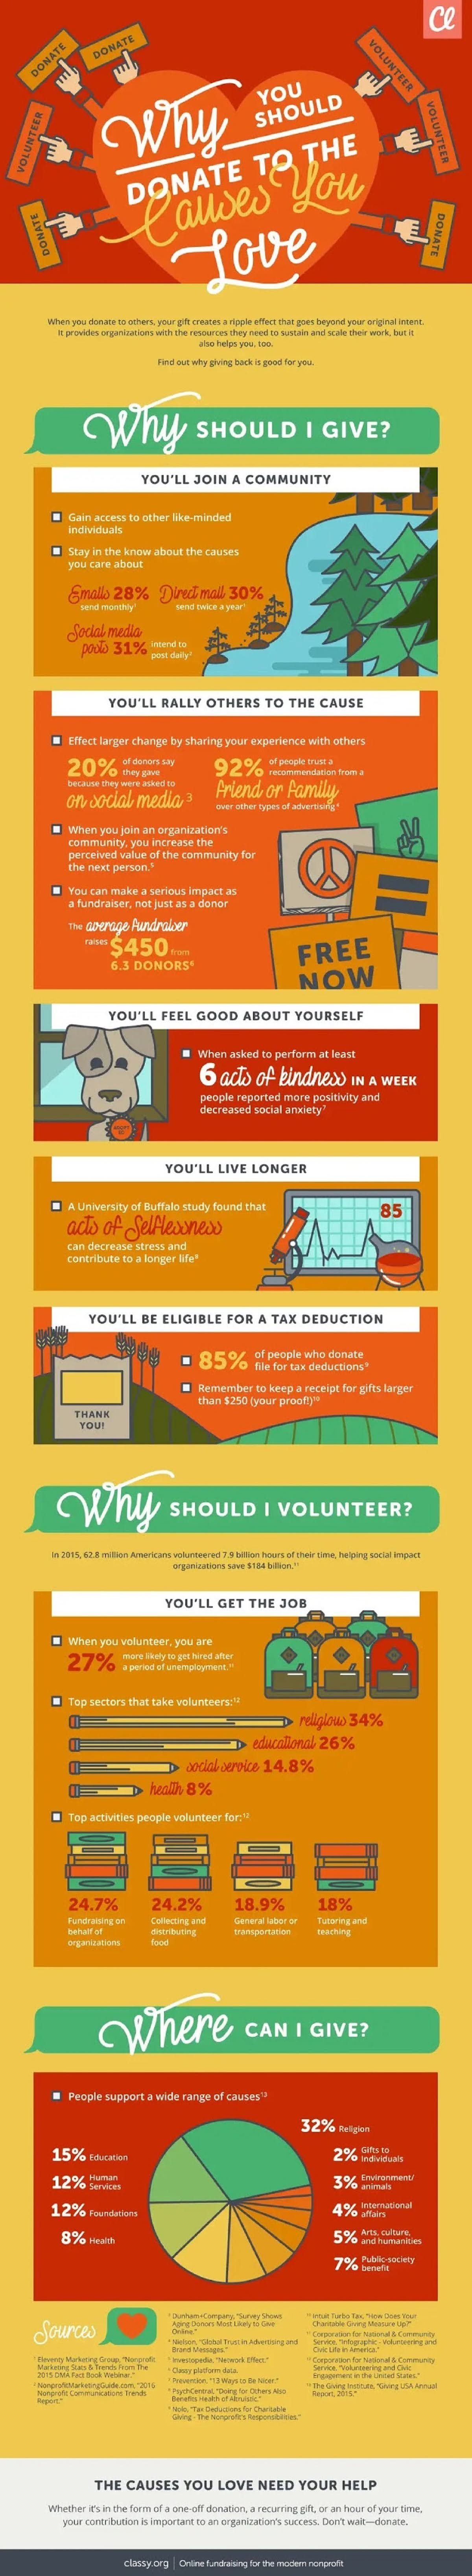 why-you-should-donate-to-the-causes-you-love-infographic